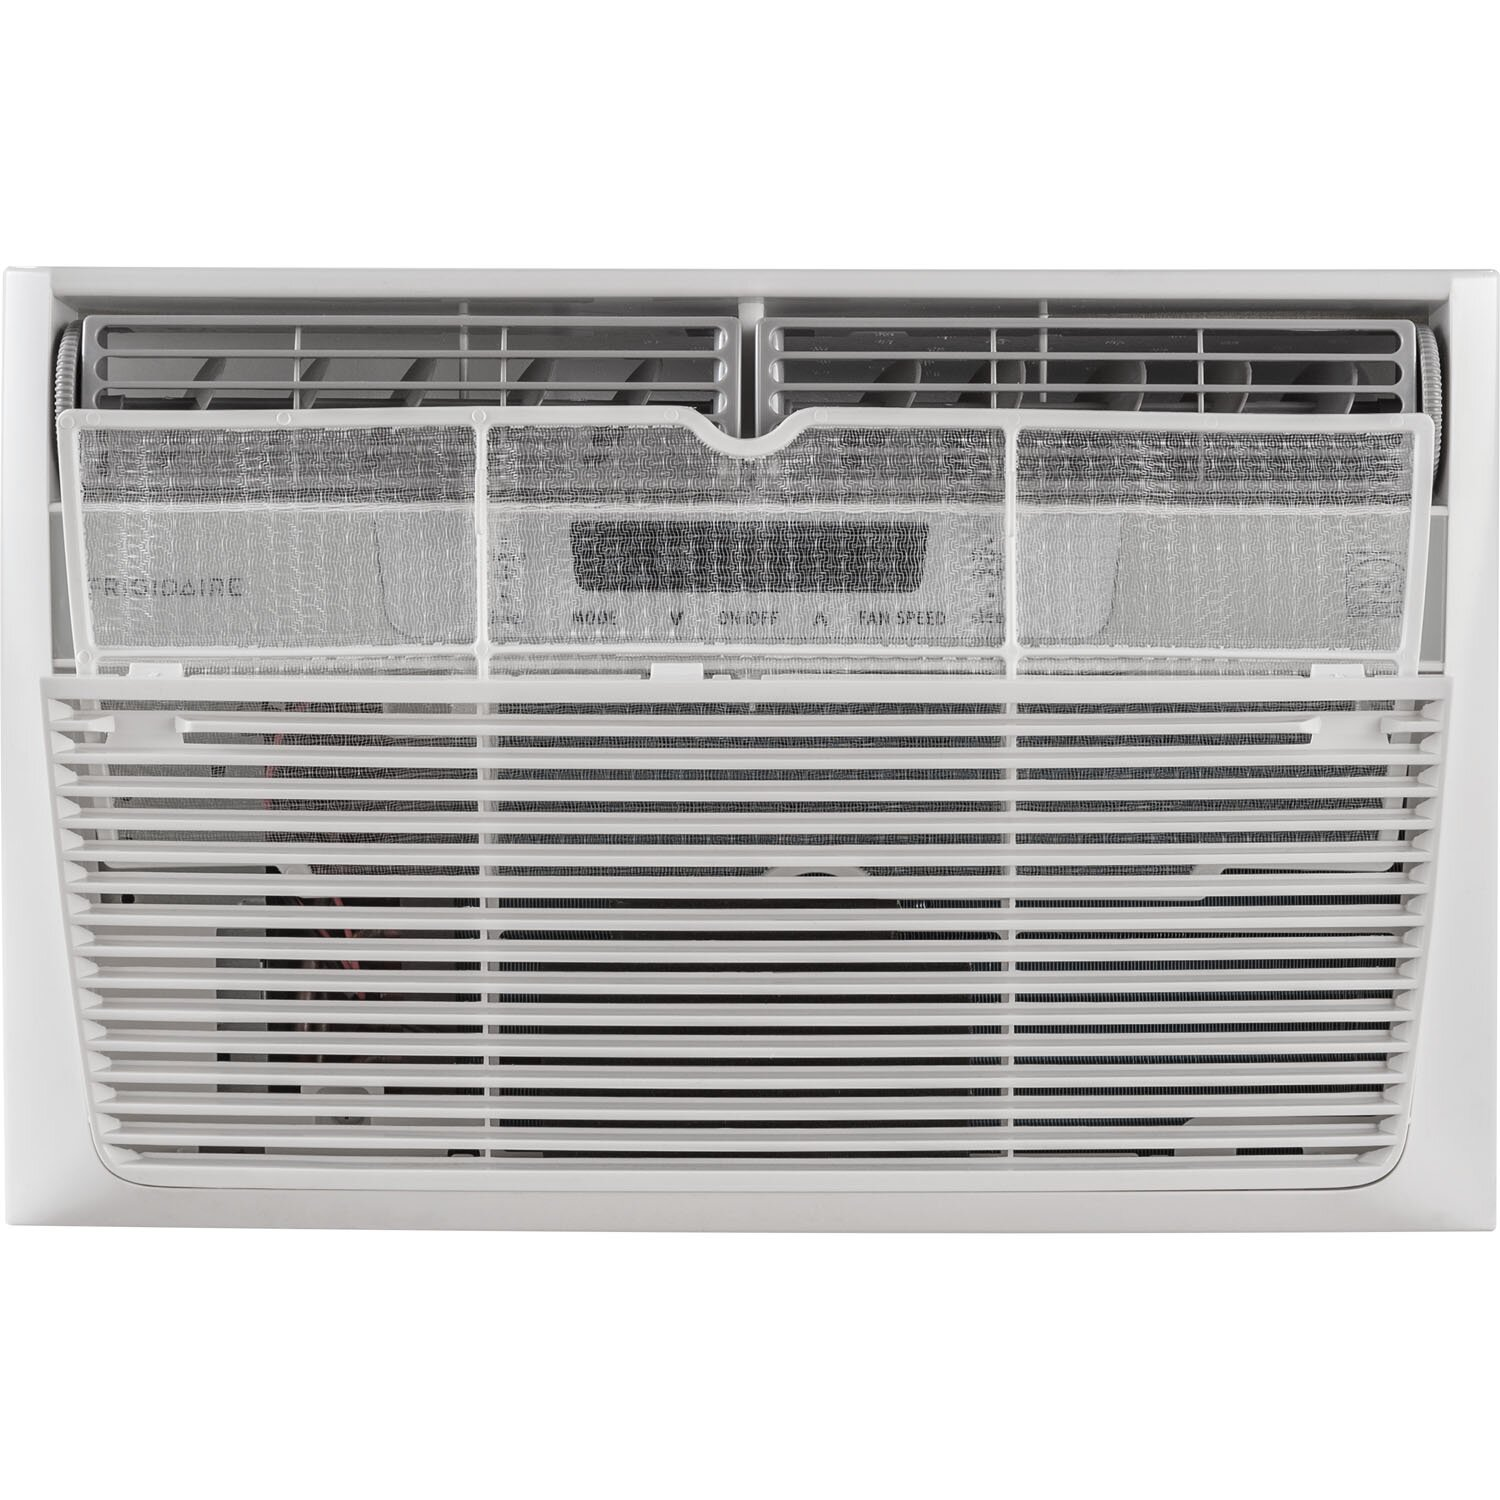 8 000 BTU Energy Star Window Mini Compact Air Conditioner with Remote #585251